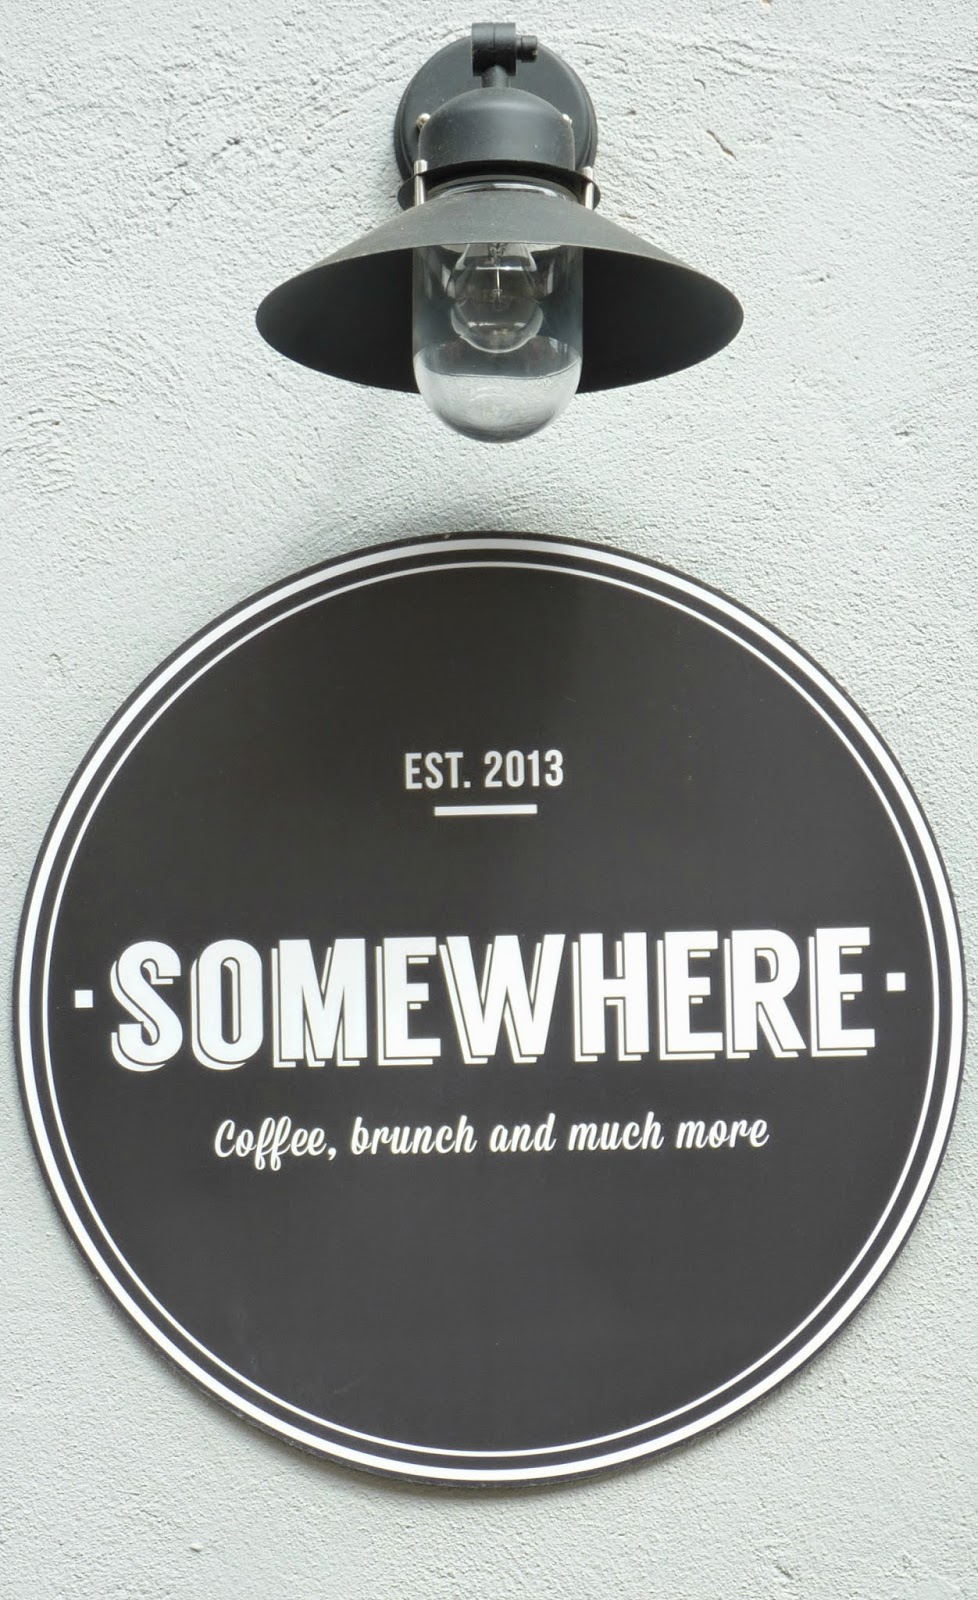 Somewhere Cafe